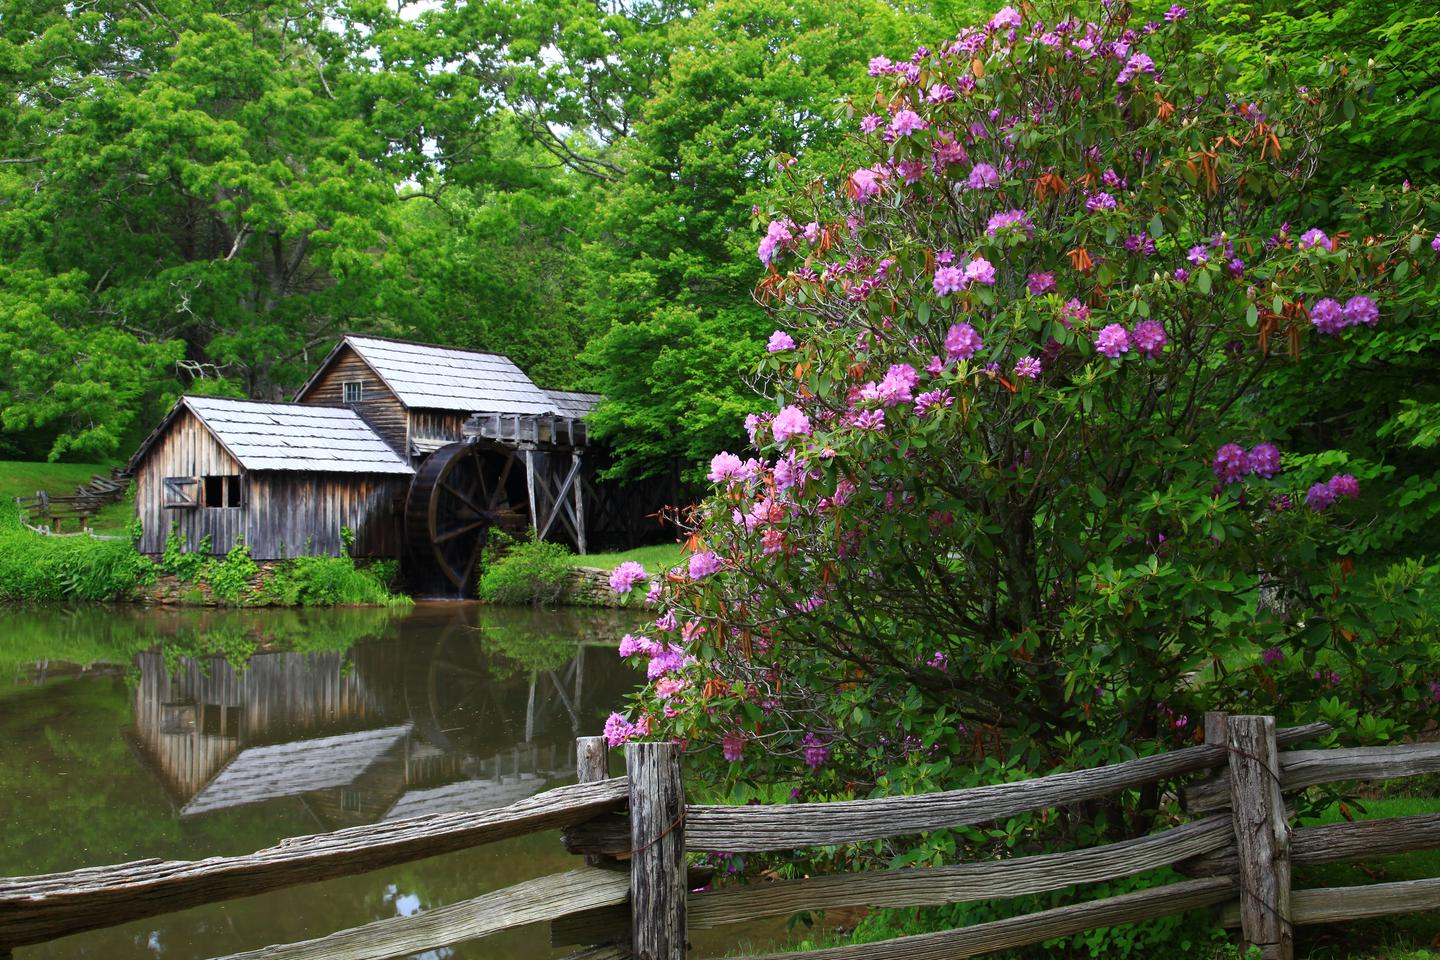 Mabry MillLocated in Virginia's Plateau district, picturesque Mabry Mill is one of the most iconic features of the Blue Ridge Parkway